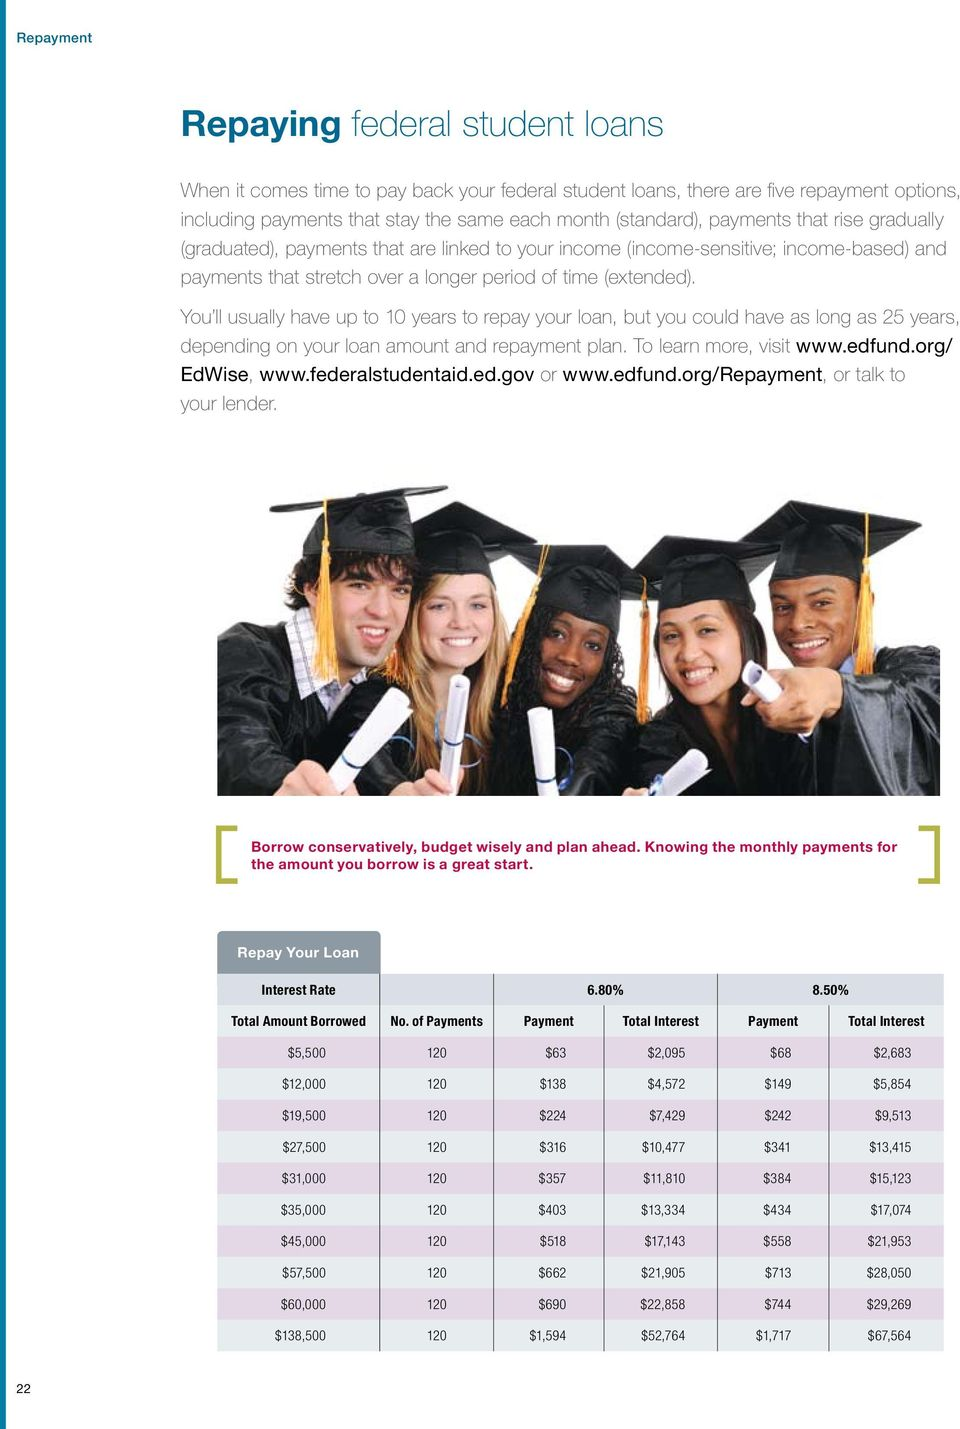 You ll usually have up to 10 years to repay your loan, but you could have as long as 25 years, depending on your loan amount and repayment plan. To learn more, visit www.edfund.org/ EdWise, www.